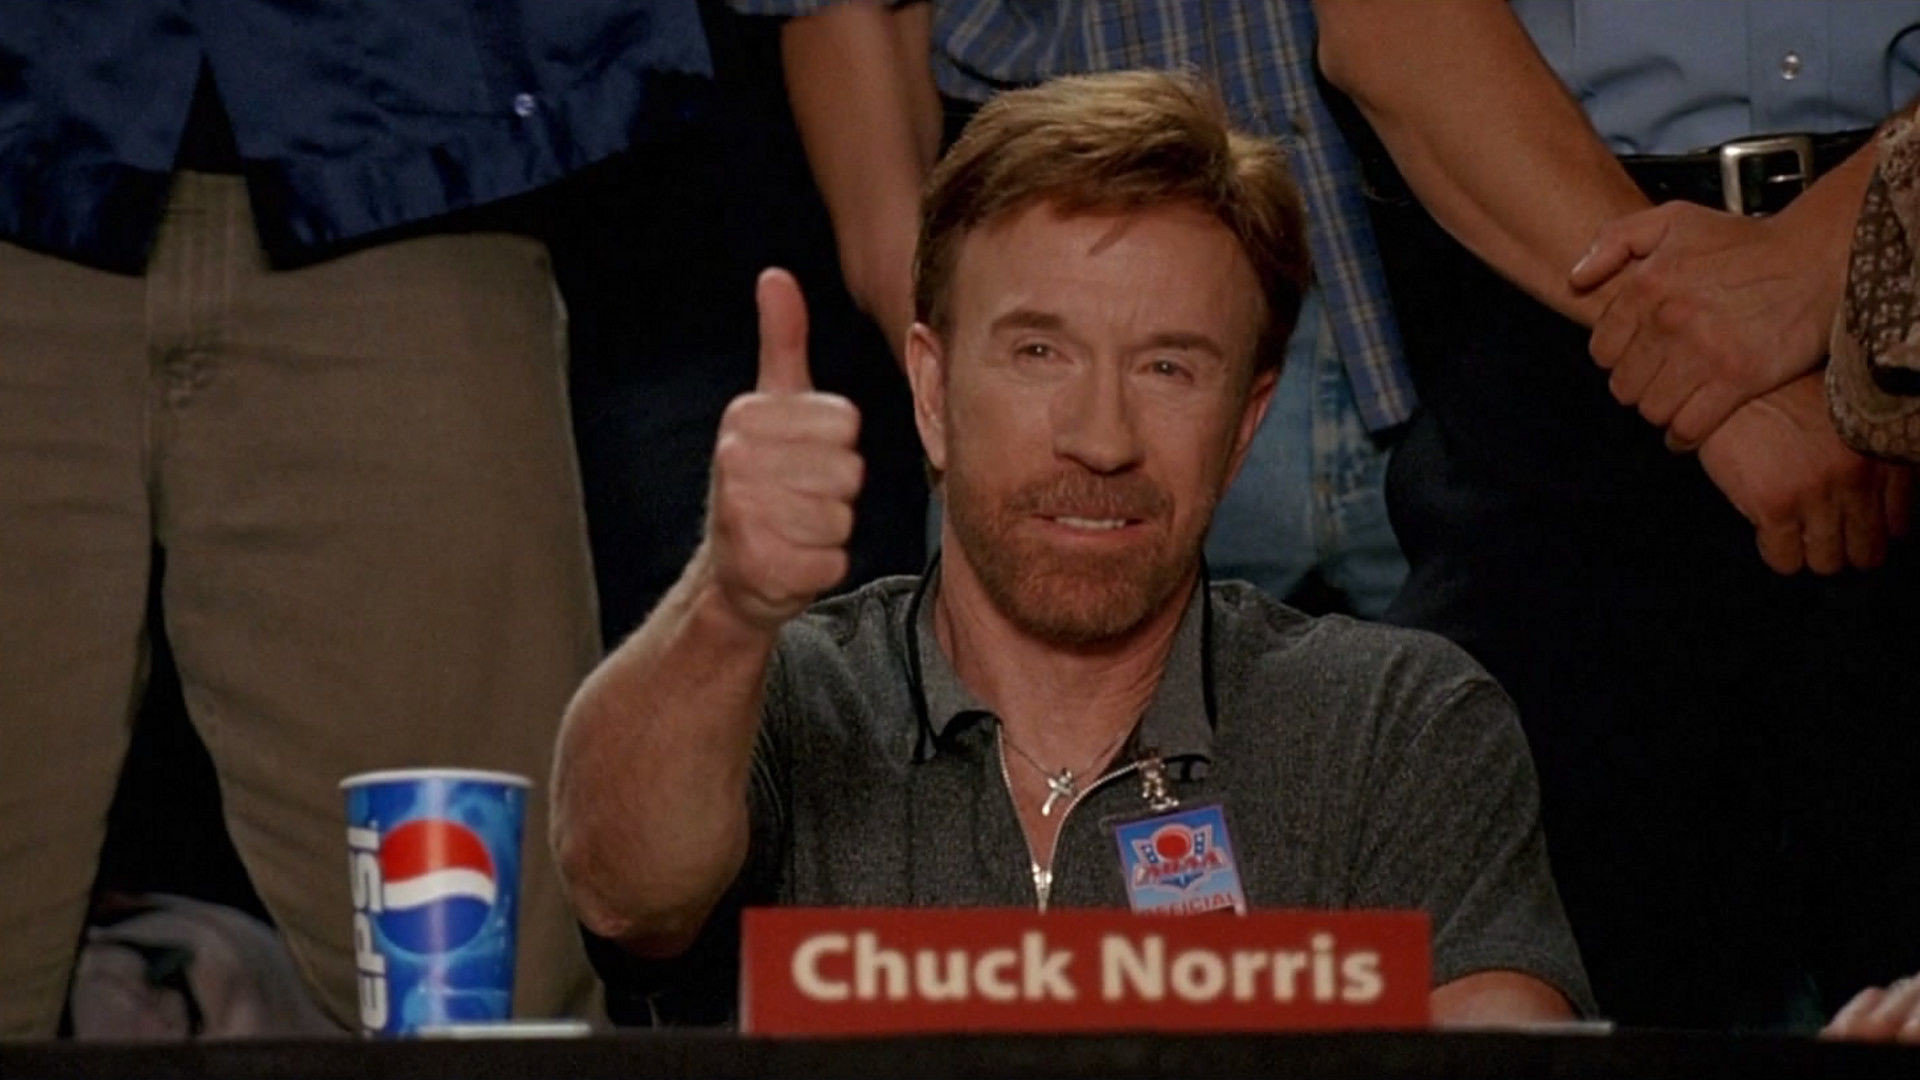 1920x1080 High Quality Thank You, Chuck Norris Blank Meme Template